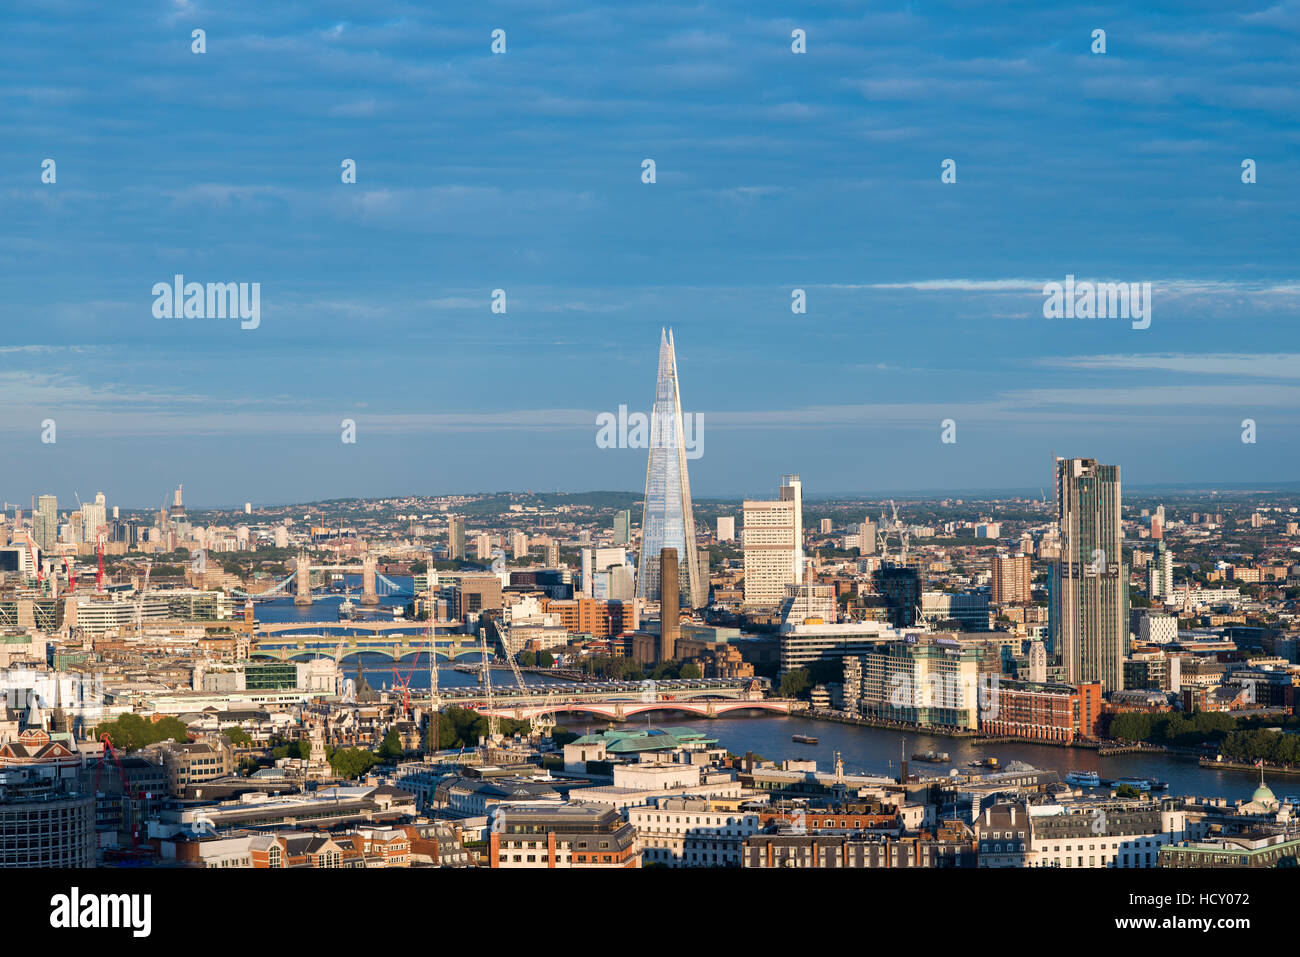 A view of London and the River Thames including The Shard, Tate Modern and Tower Bridge, London, UK - Stock Image